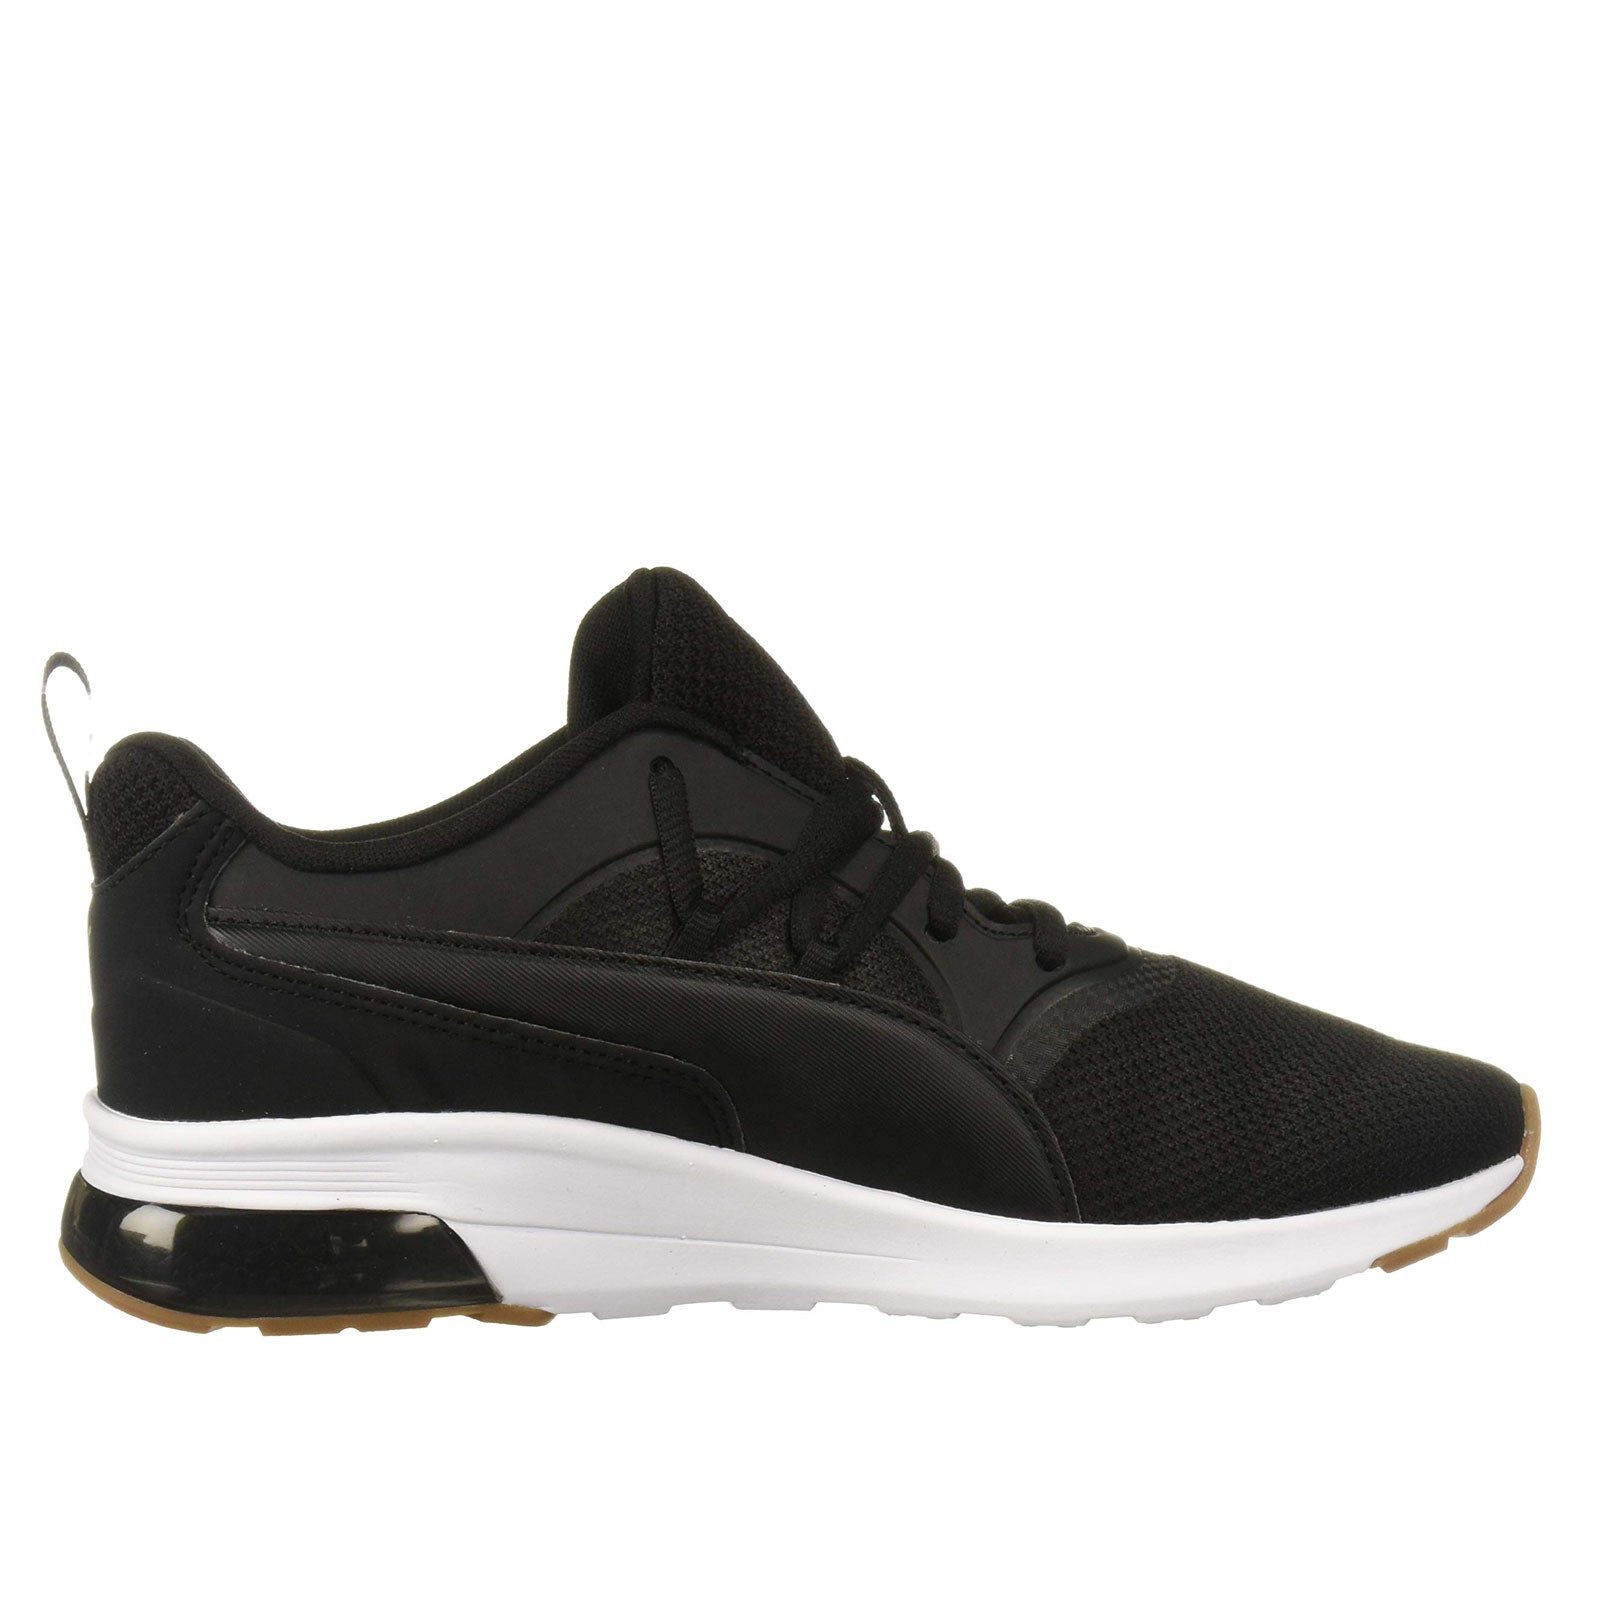 Puma Electron Star Metallic-Black-Rose gold-White-Gum